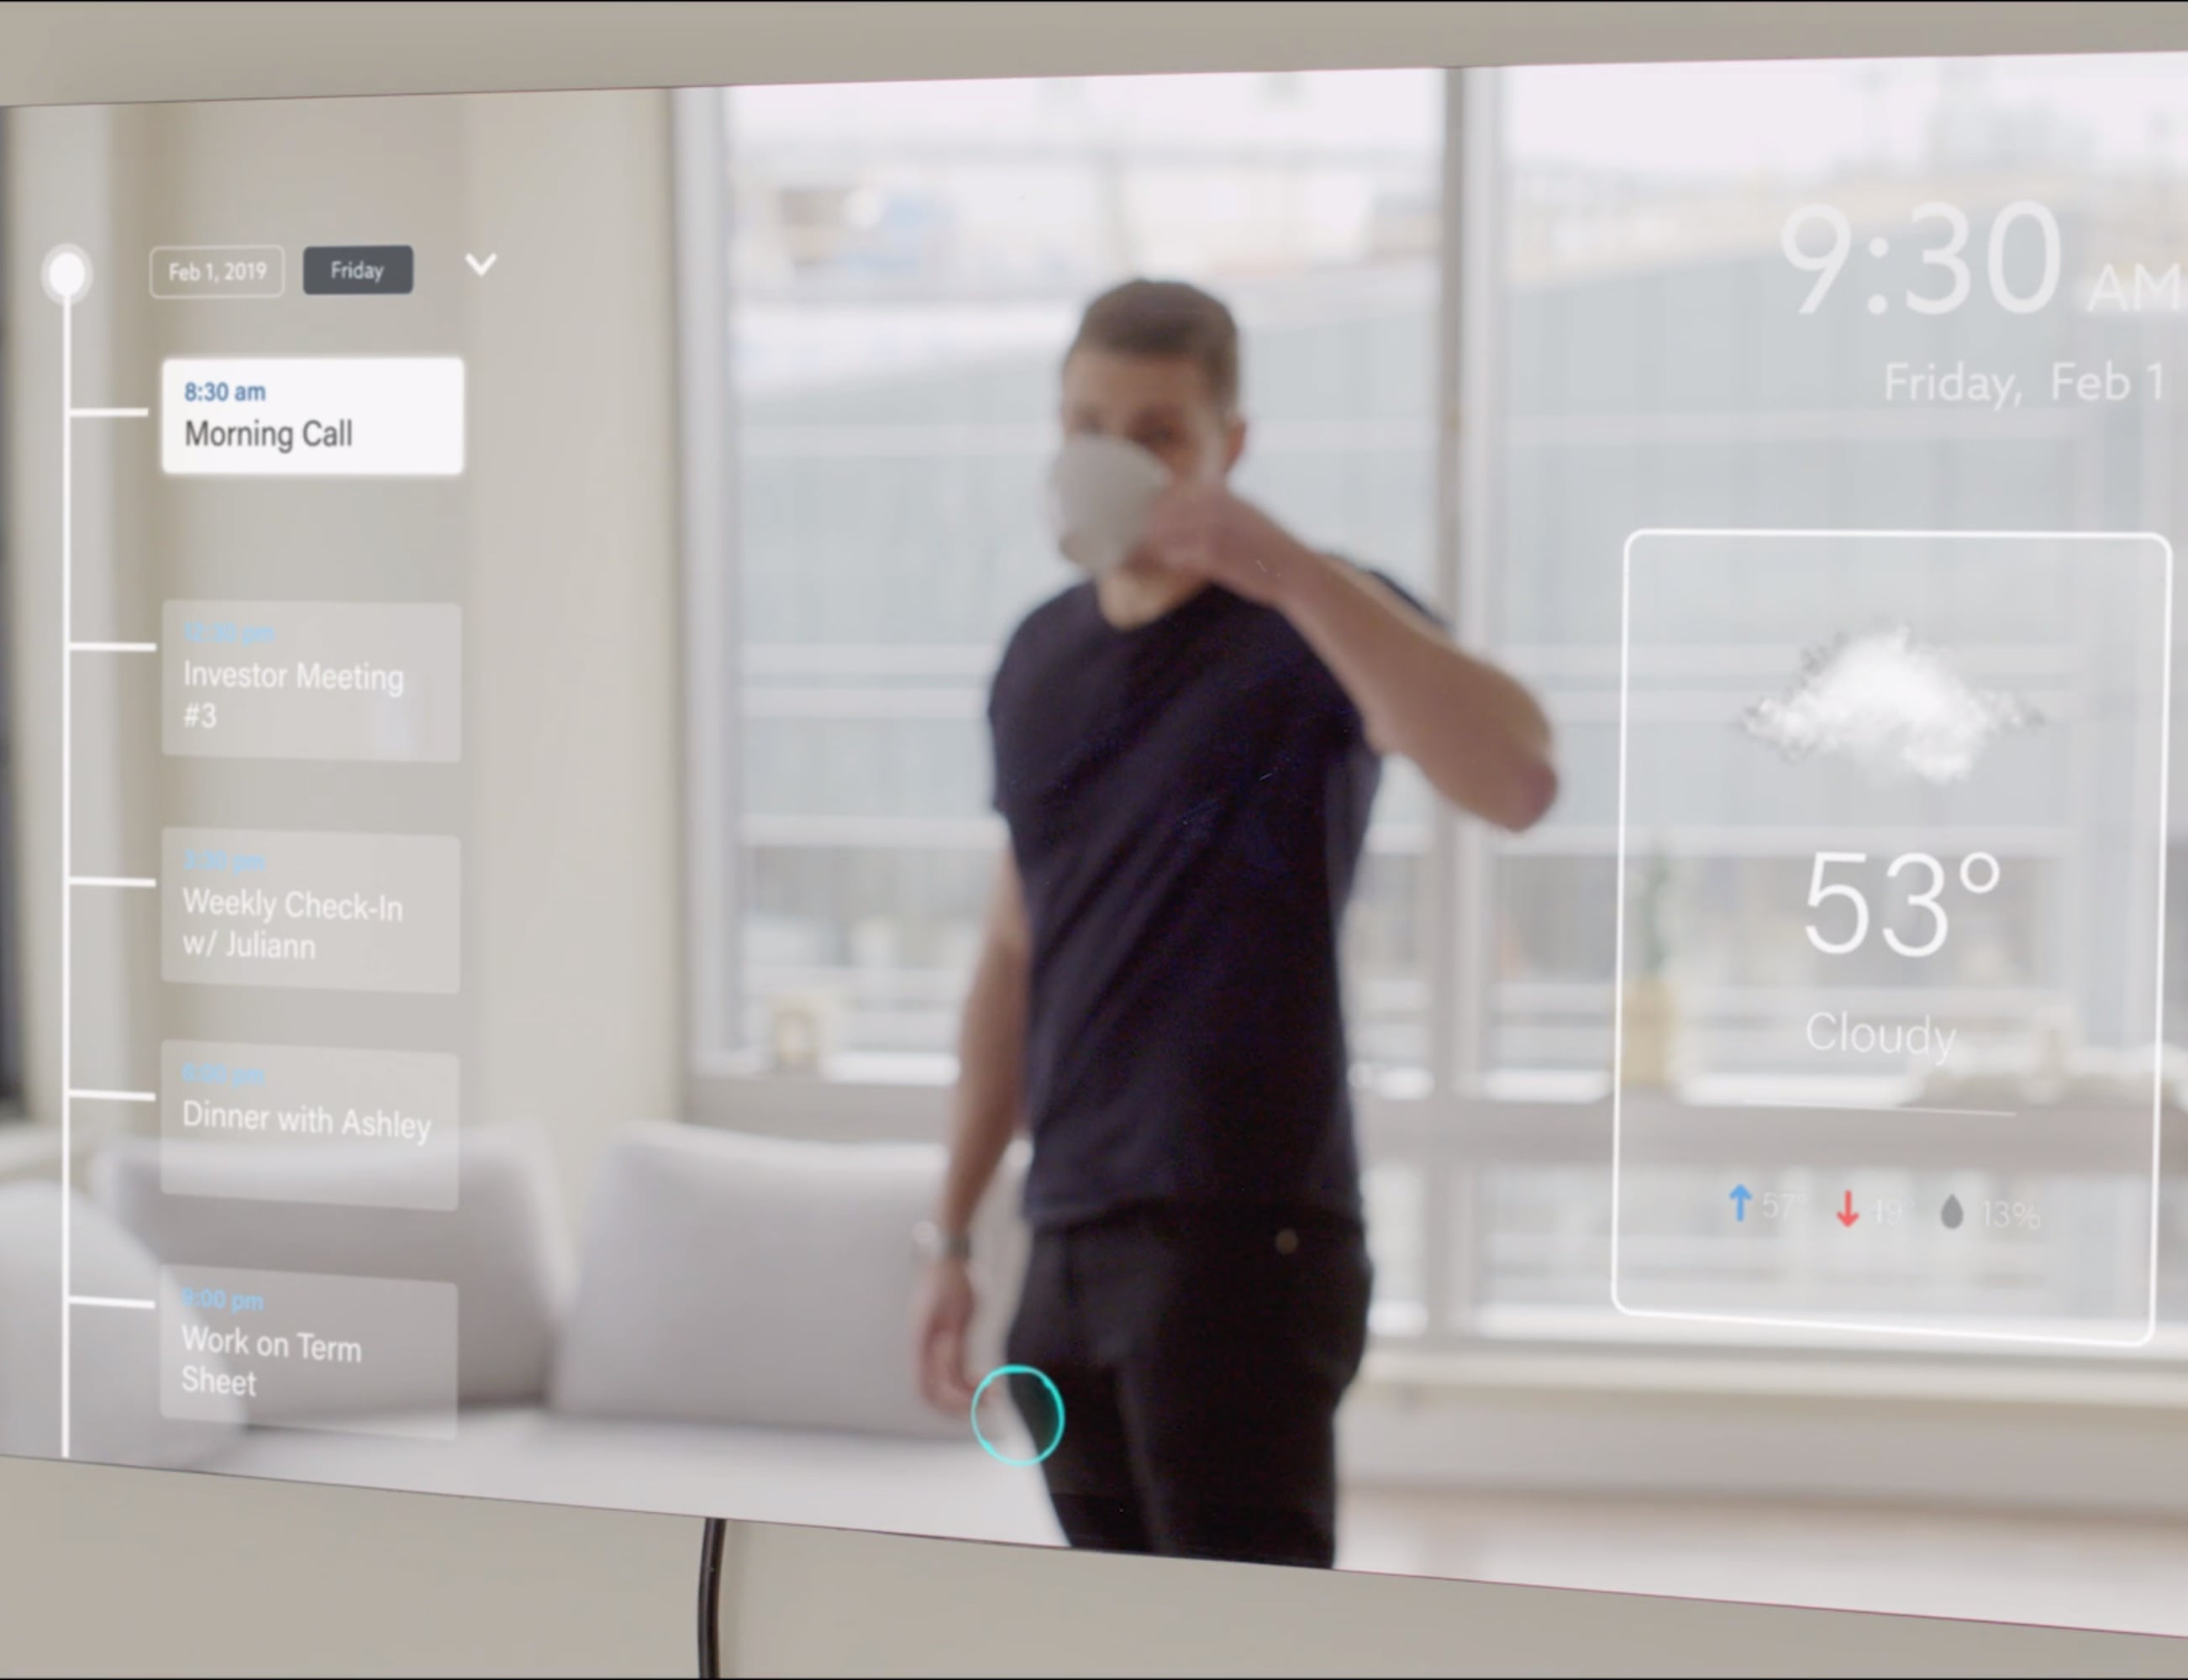 Cool Tech: AI-powered Smart Mirror, Pocket-sized drone and more